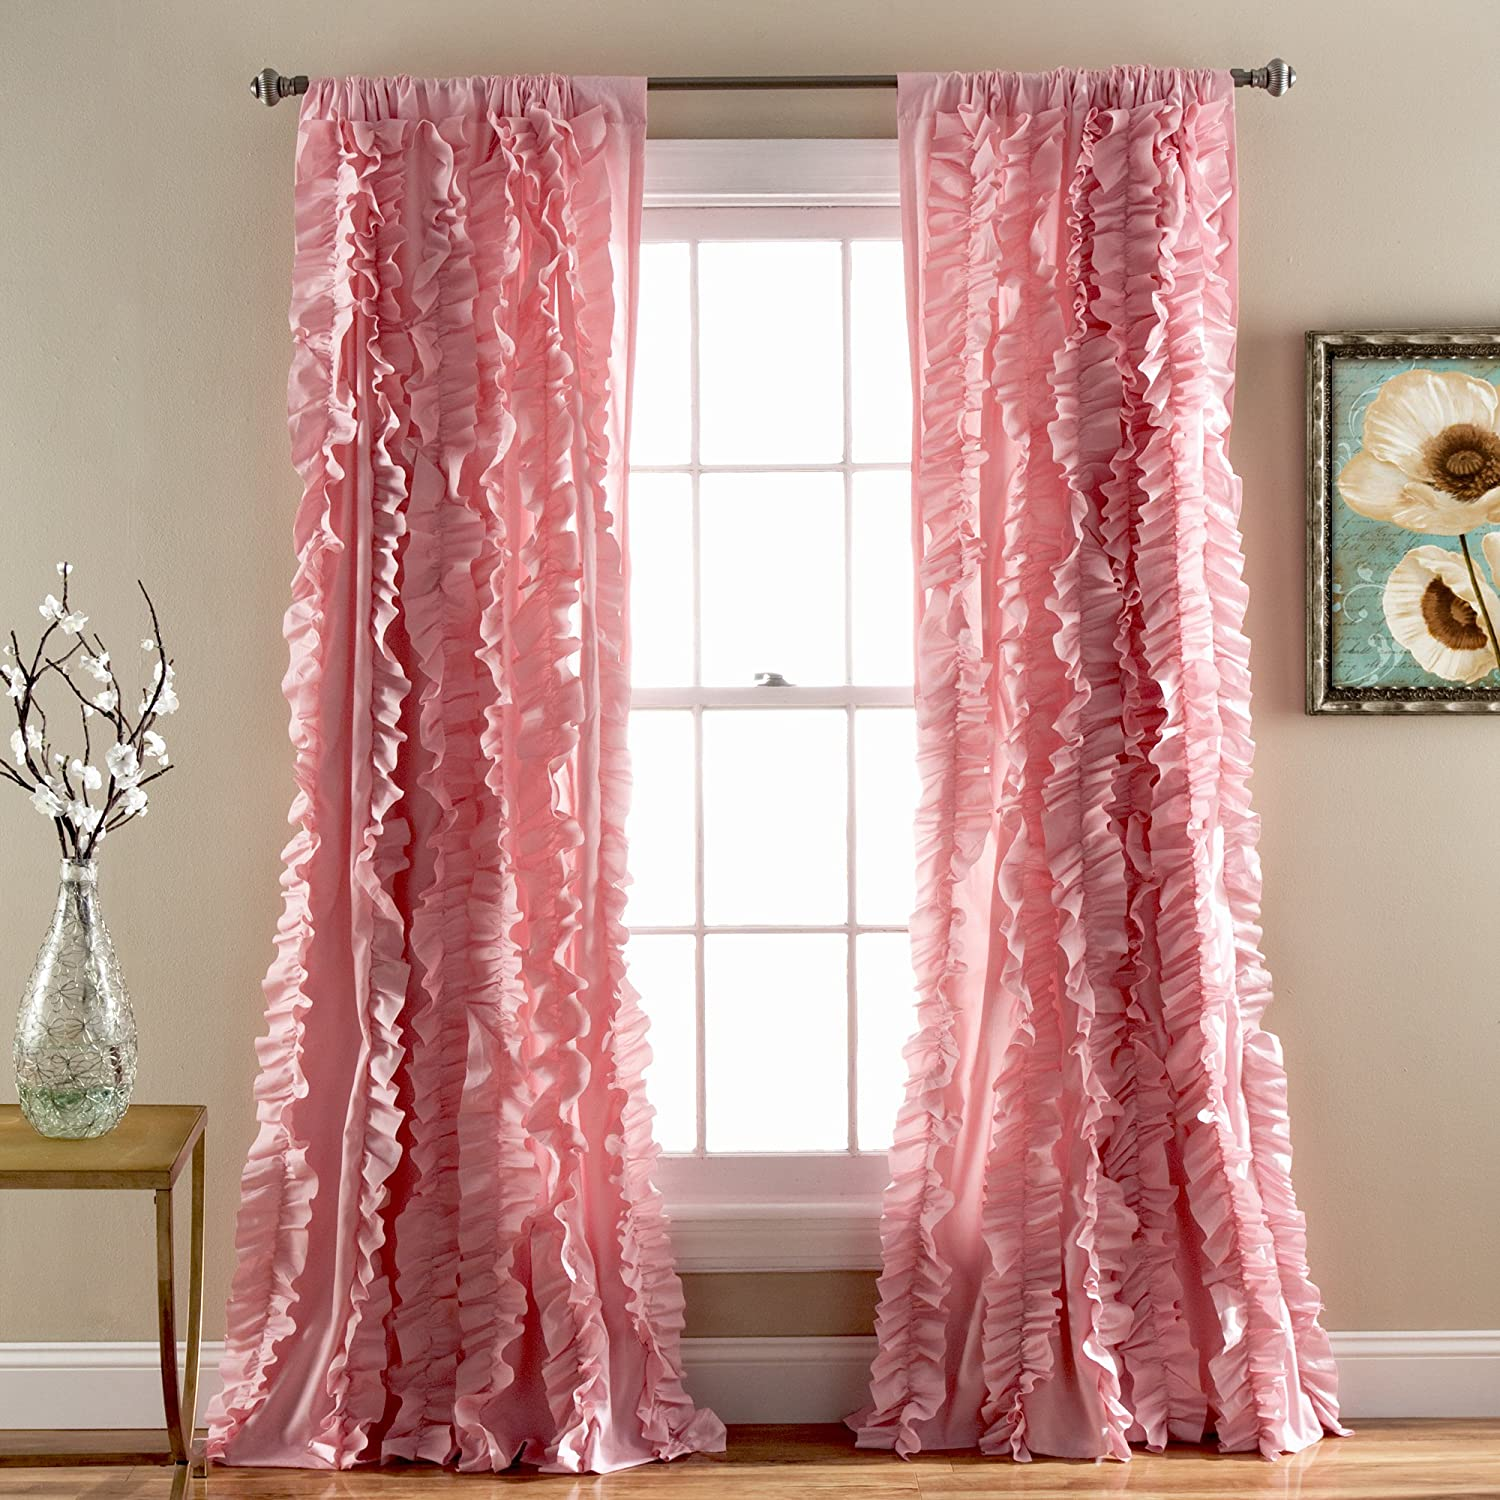 """Lush Decor Belle Window Panel for Living, Dining Room, Bedroom (Single Curtain)), 84"""" x 54"""" Pink (C26144P14-000)"""